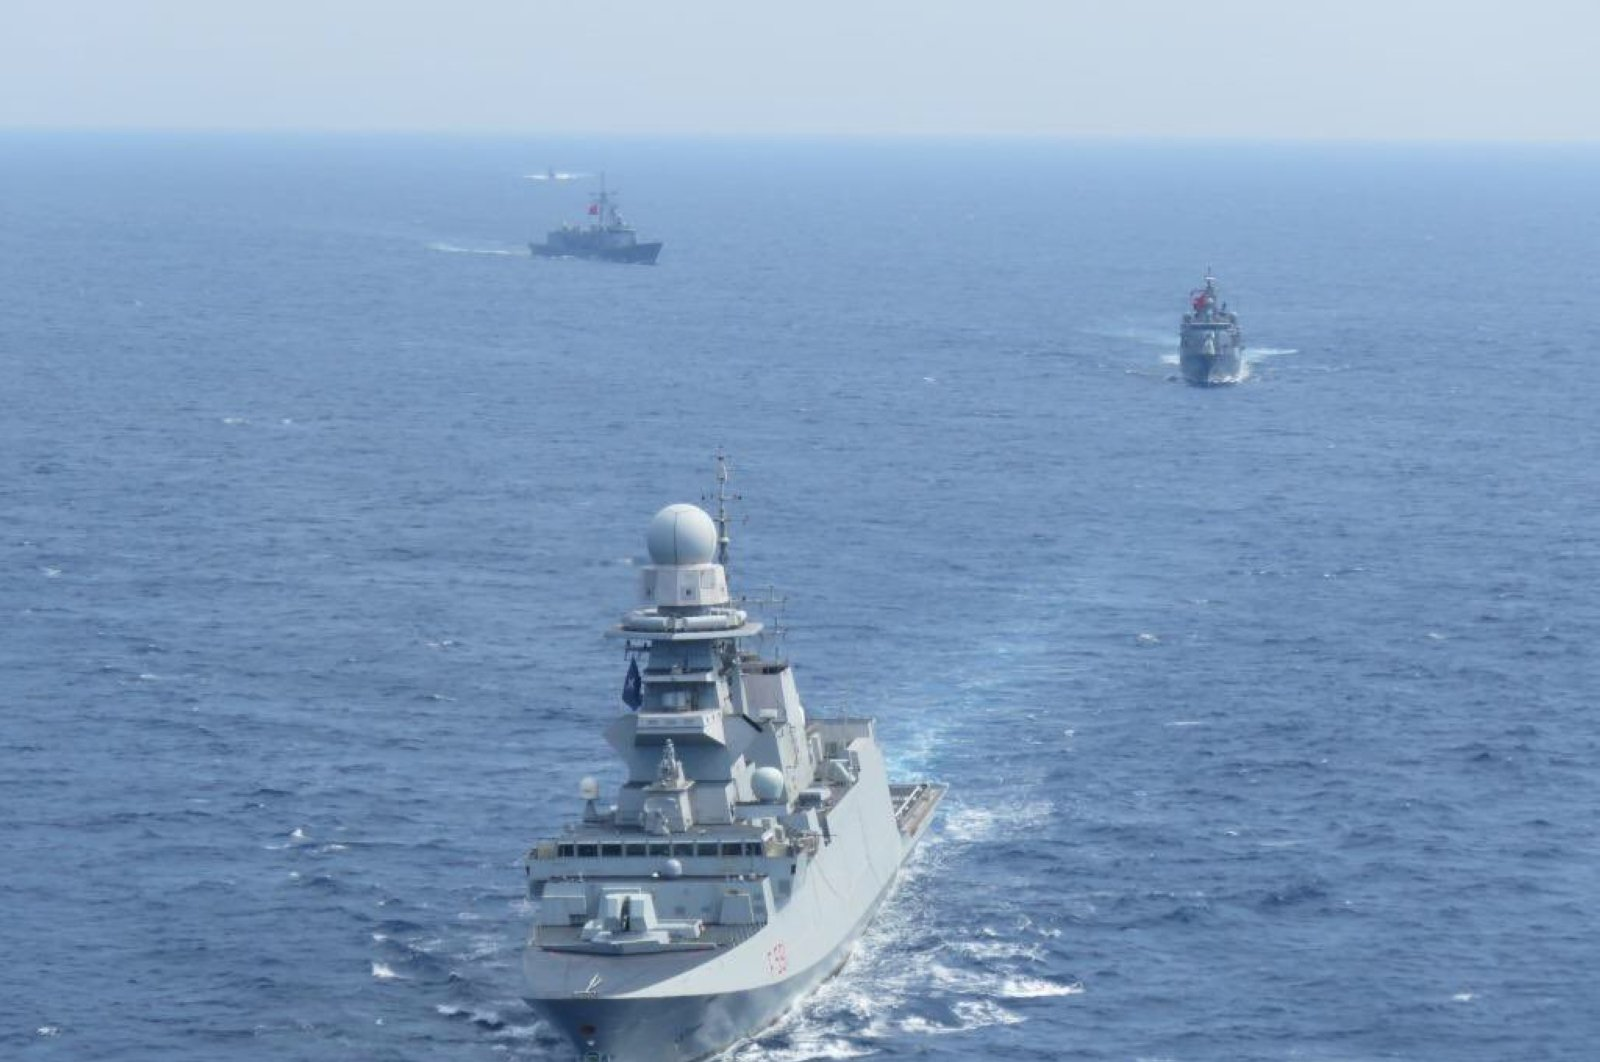 Turkey: Italian and Turkish frigates conduct joint training in the Eastern Mediterranean